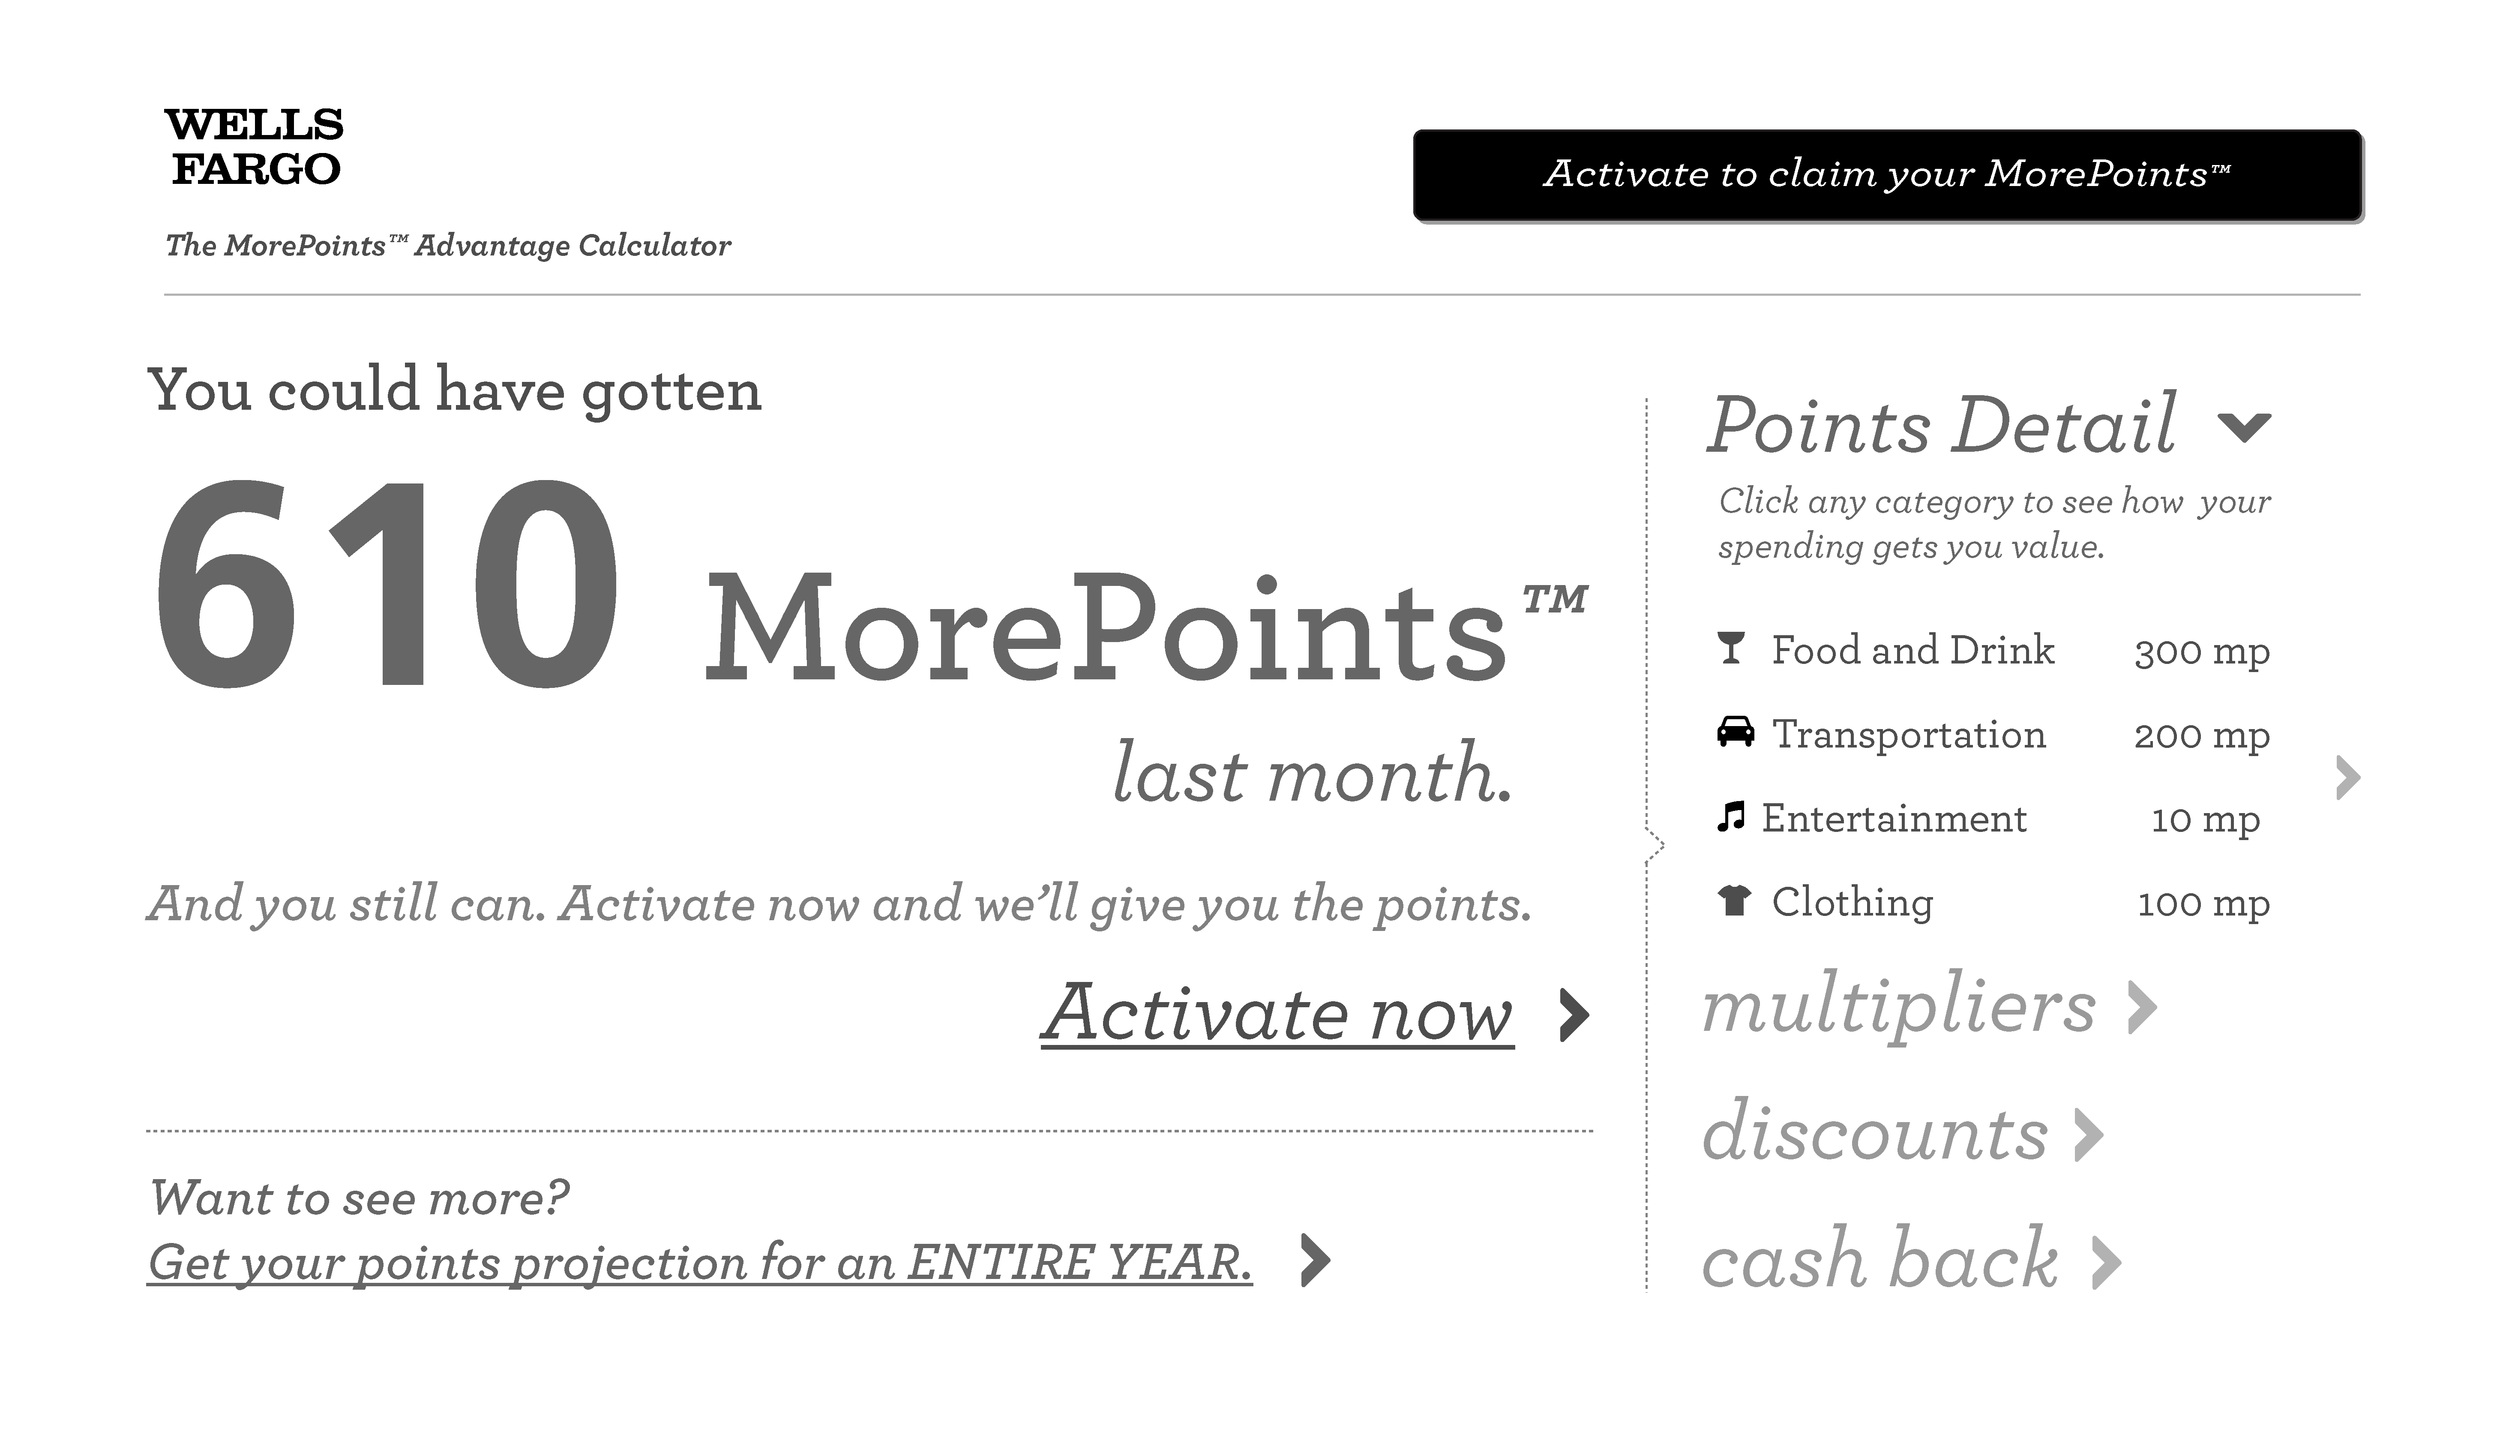 01 Wells Fargo_Page_4.png